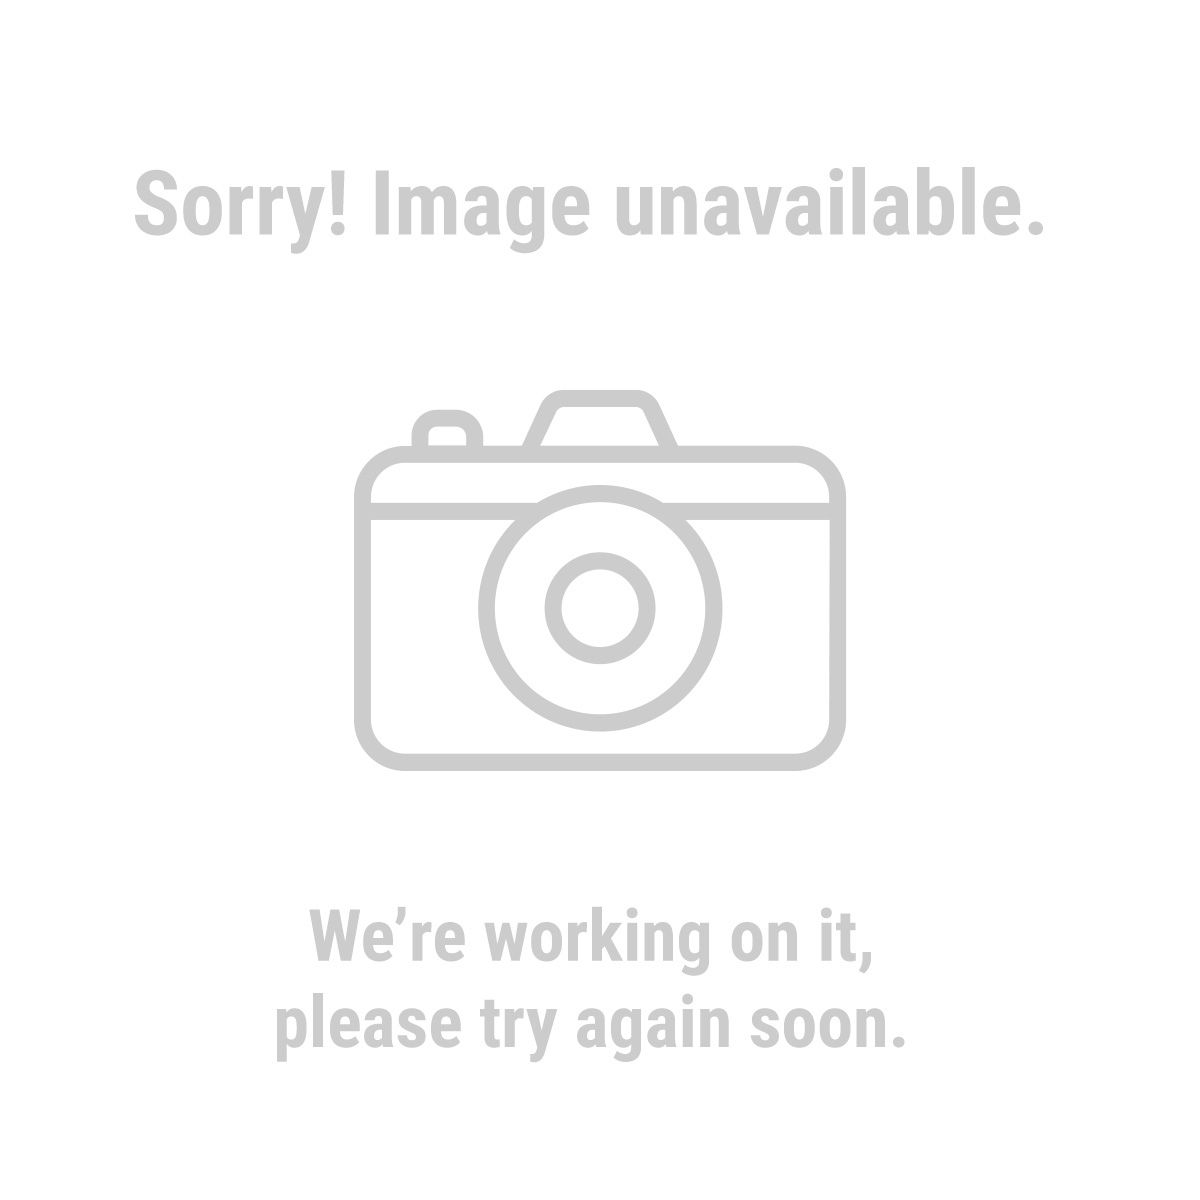 hight resolution of badlands 12000 lb winch coupon coupon code in usa badland 12000 winch wiring diagram 6000 lb